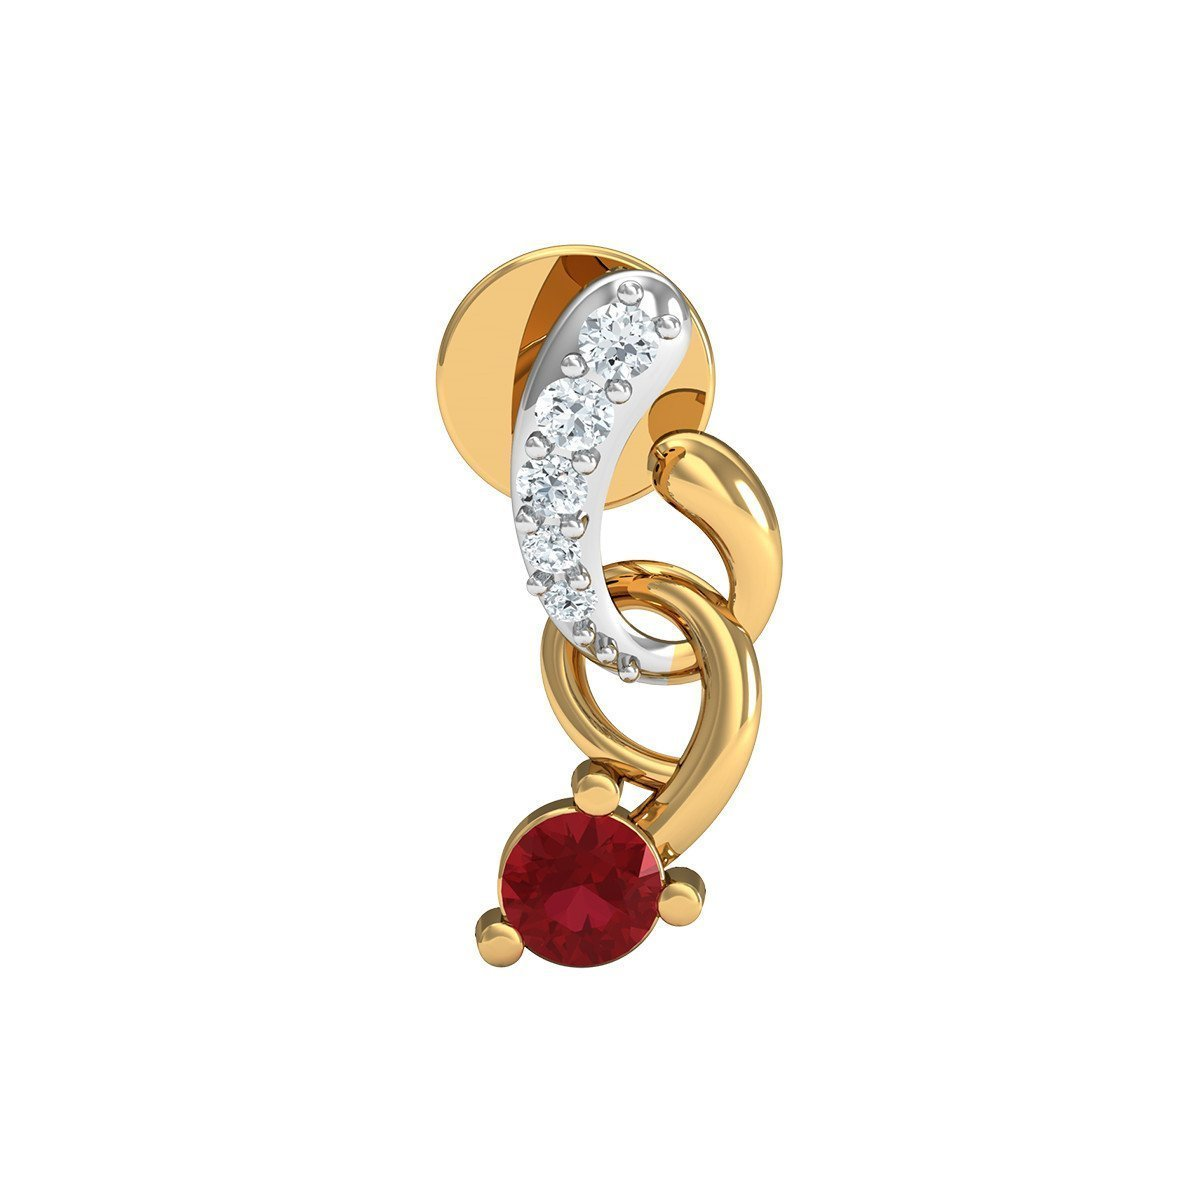 14kt Yellow Gold Pave Earrings with 12 Diamonds and 2 Round Cut Rubies